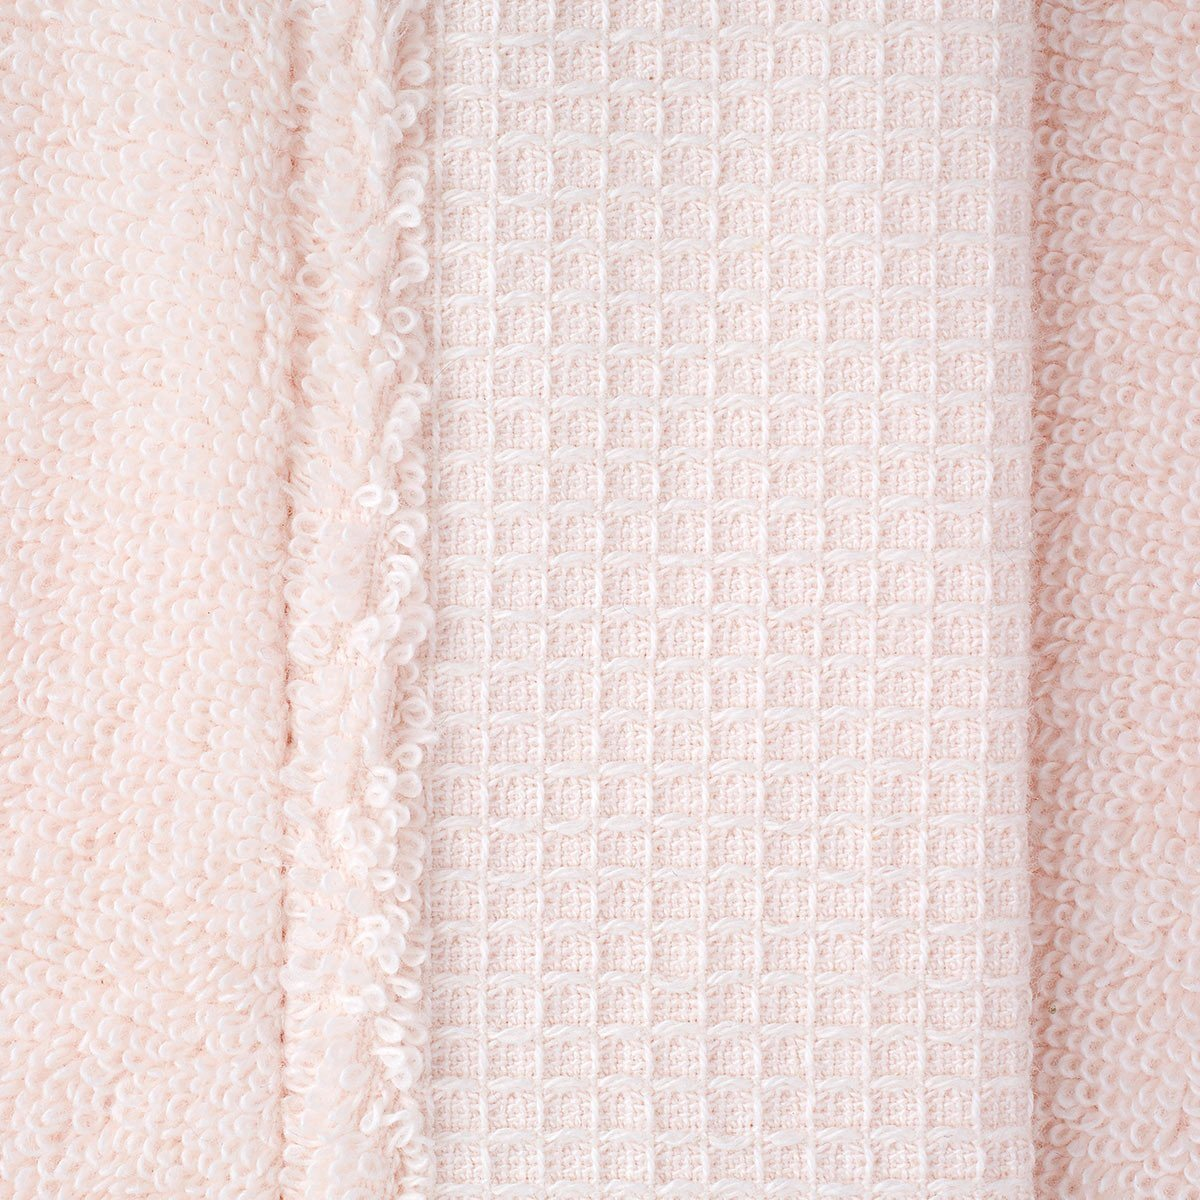 Astrée Kimono Blush Pink Bathrobe by Yves Delorme | Fig Linens - Pink robe